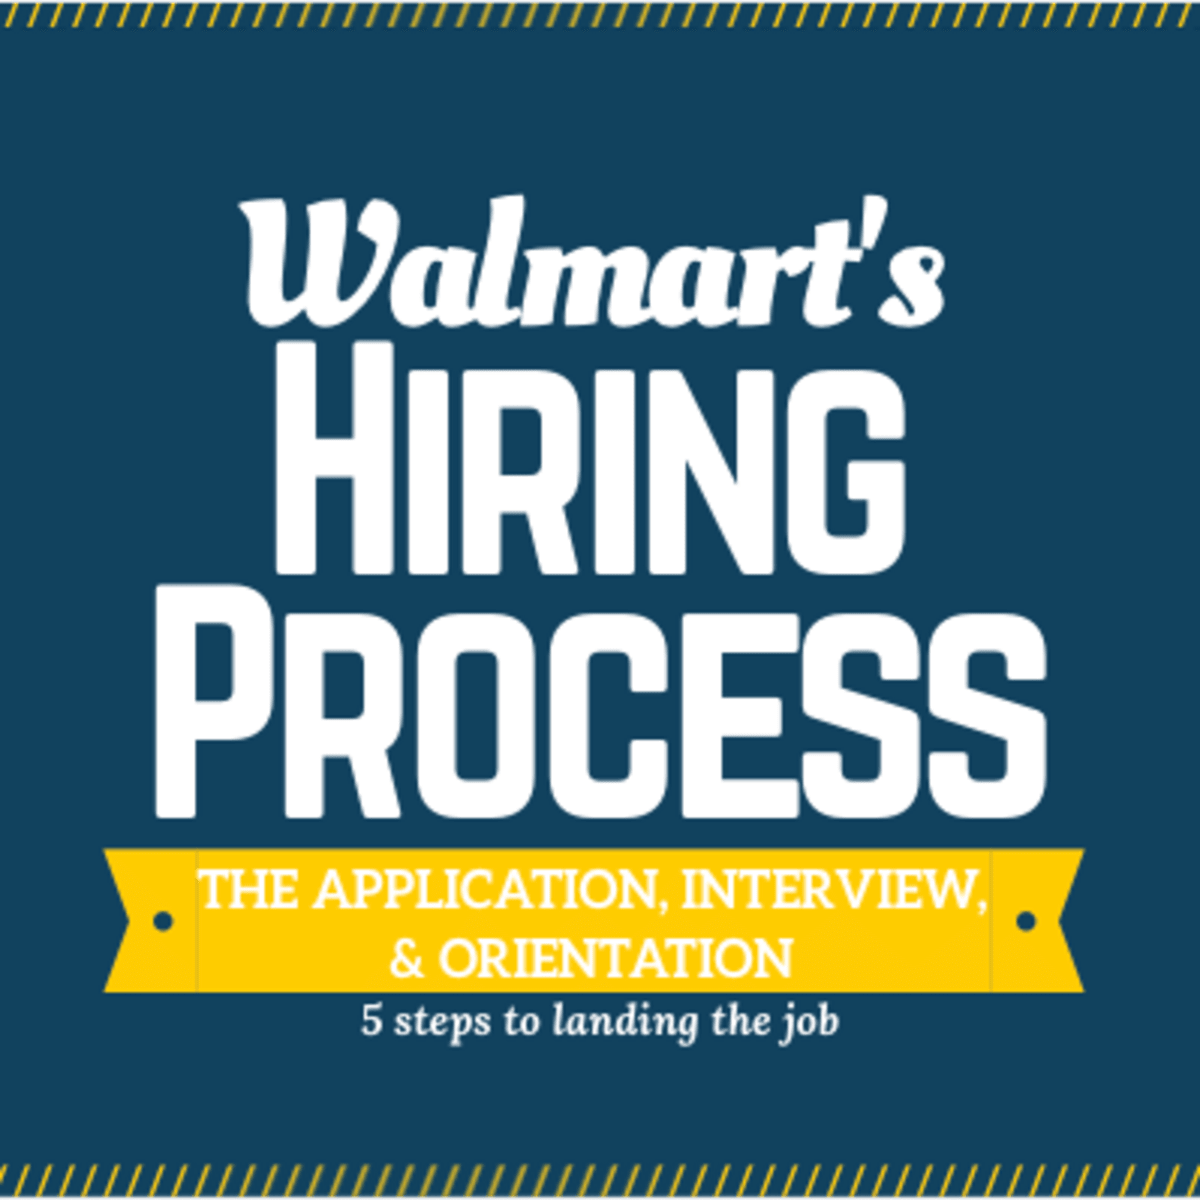 The Hiring Process At Walmart From Application To Interview To Orientation Toughnickel Money